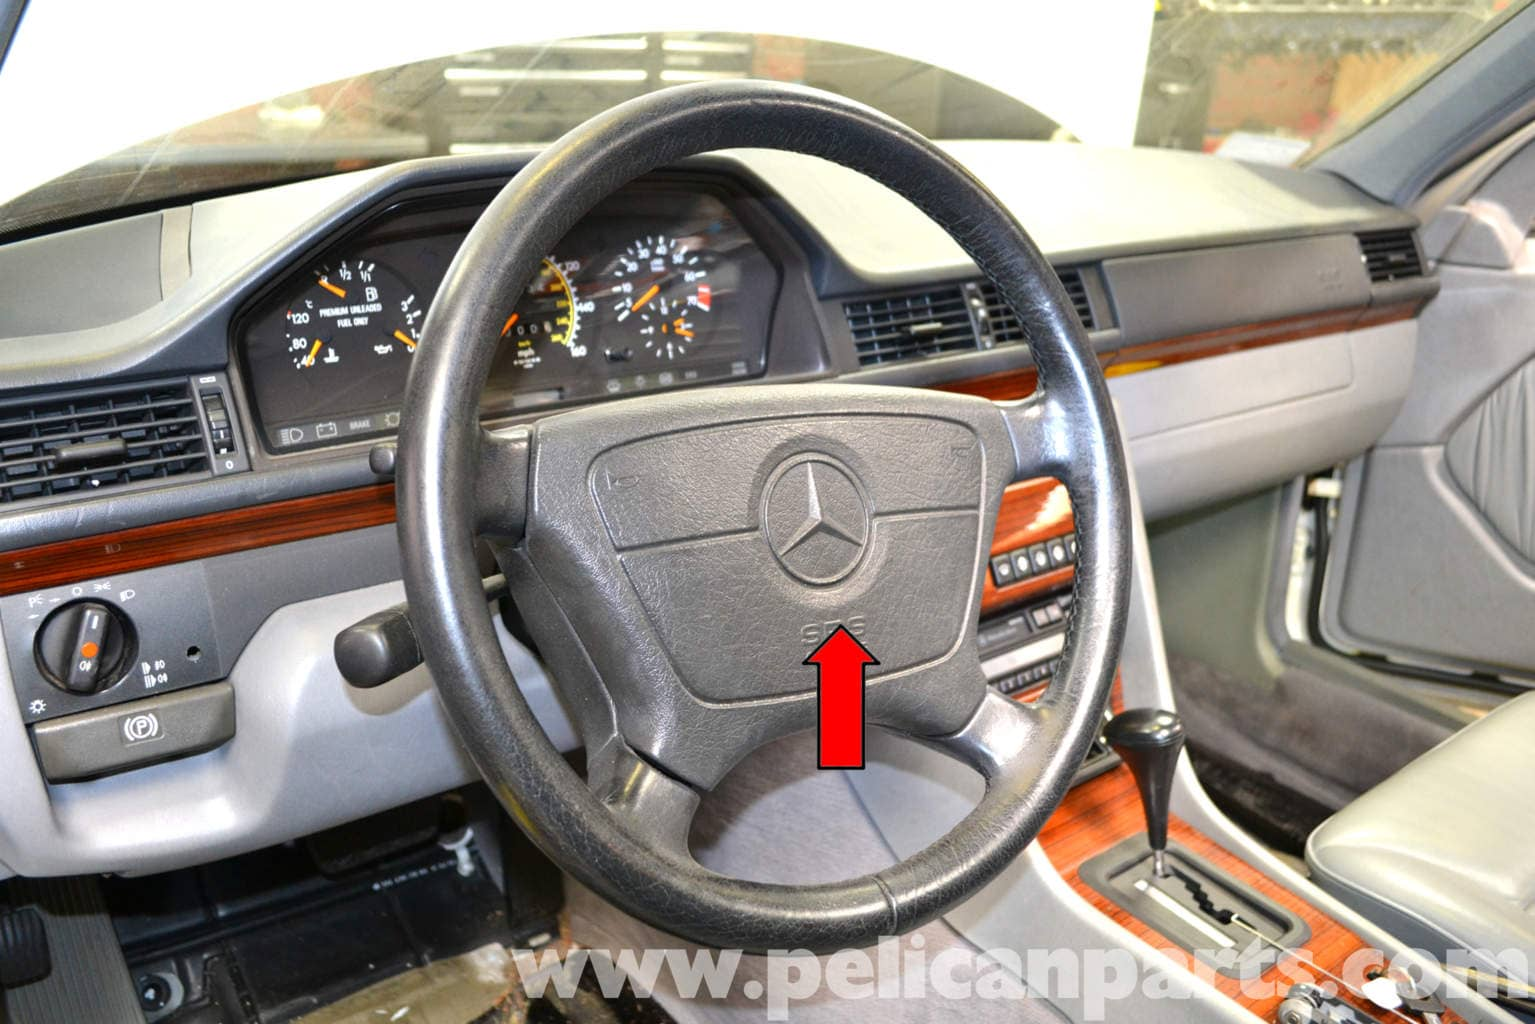 Mercedes benz w124 steering wheel and air bag removal for Mercedes benz airbags